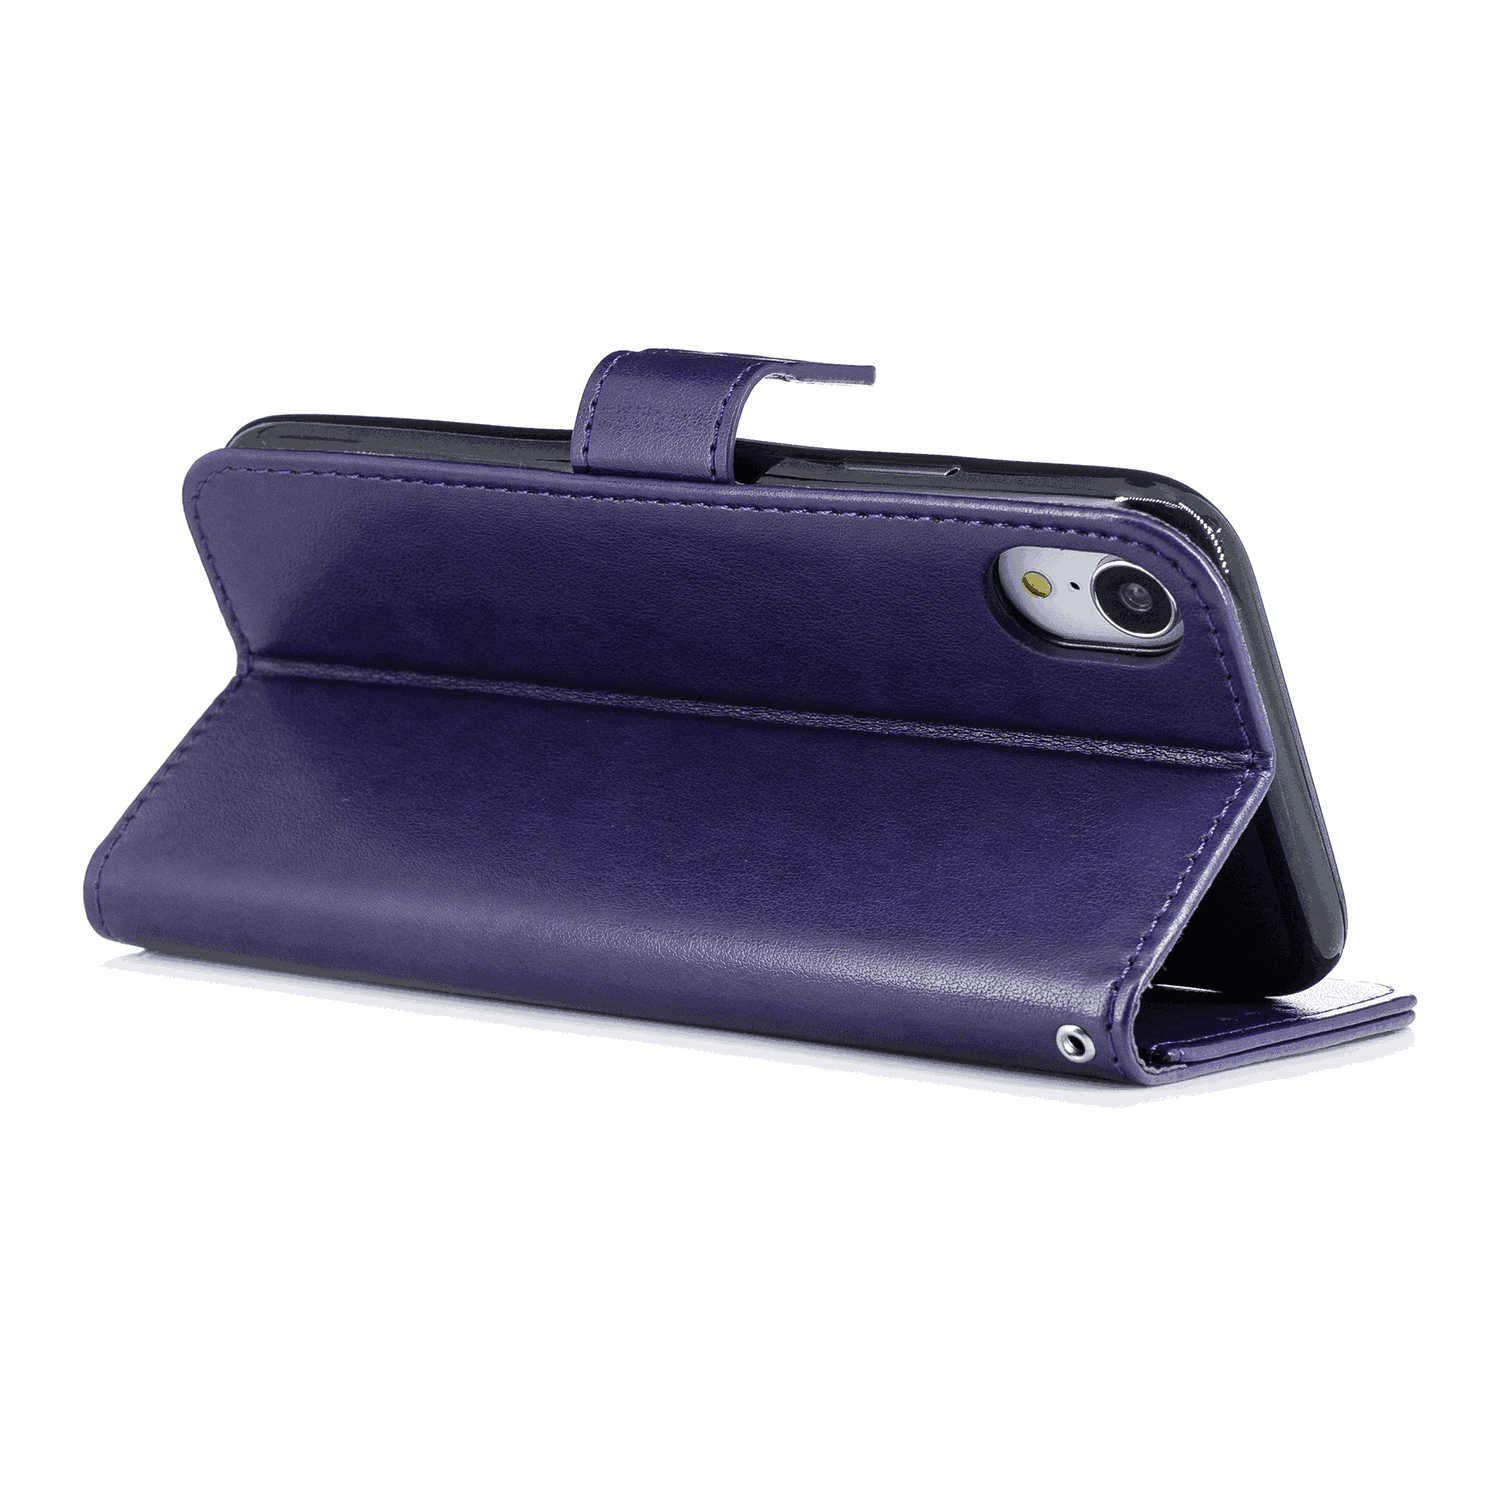 Gray Wallet Case for iPhone XR Leather Cover Compatible with iPhone XR